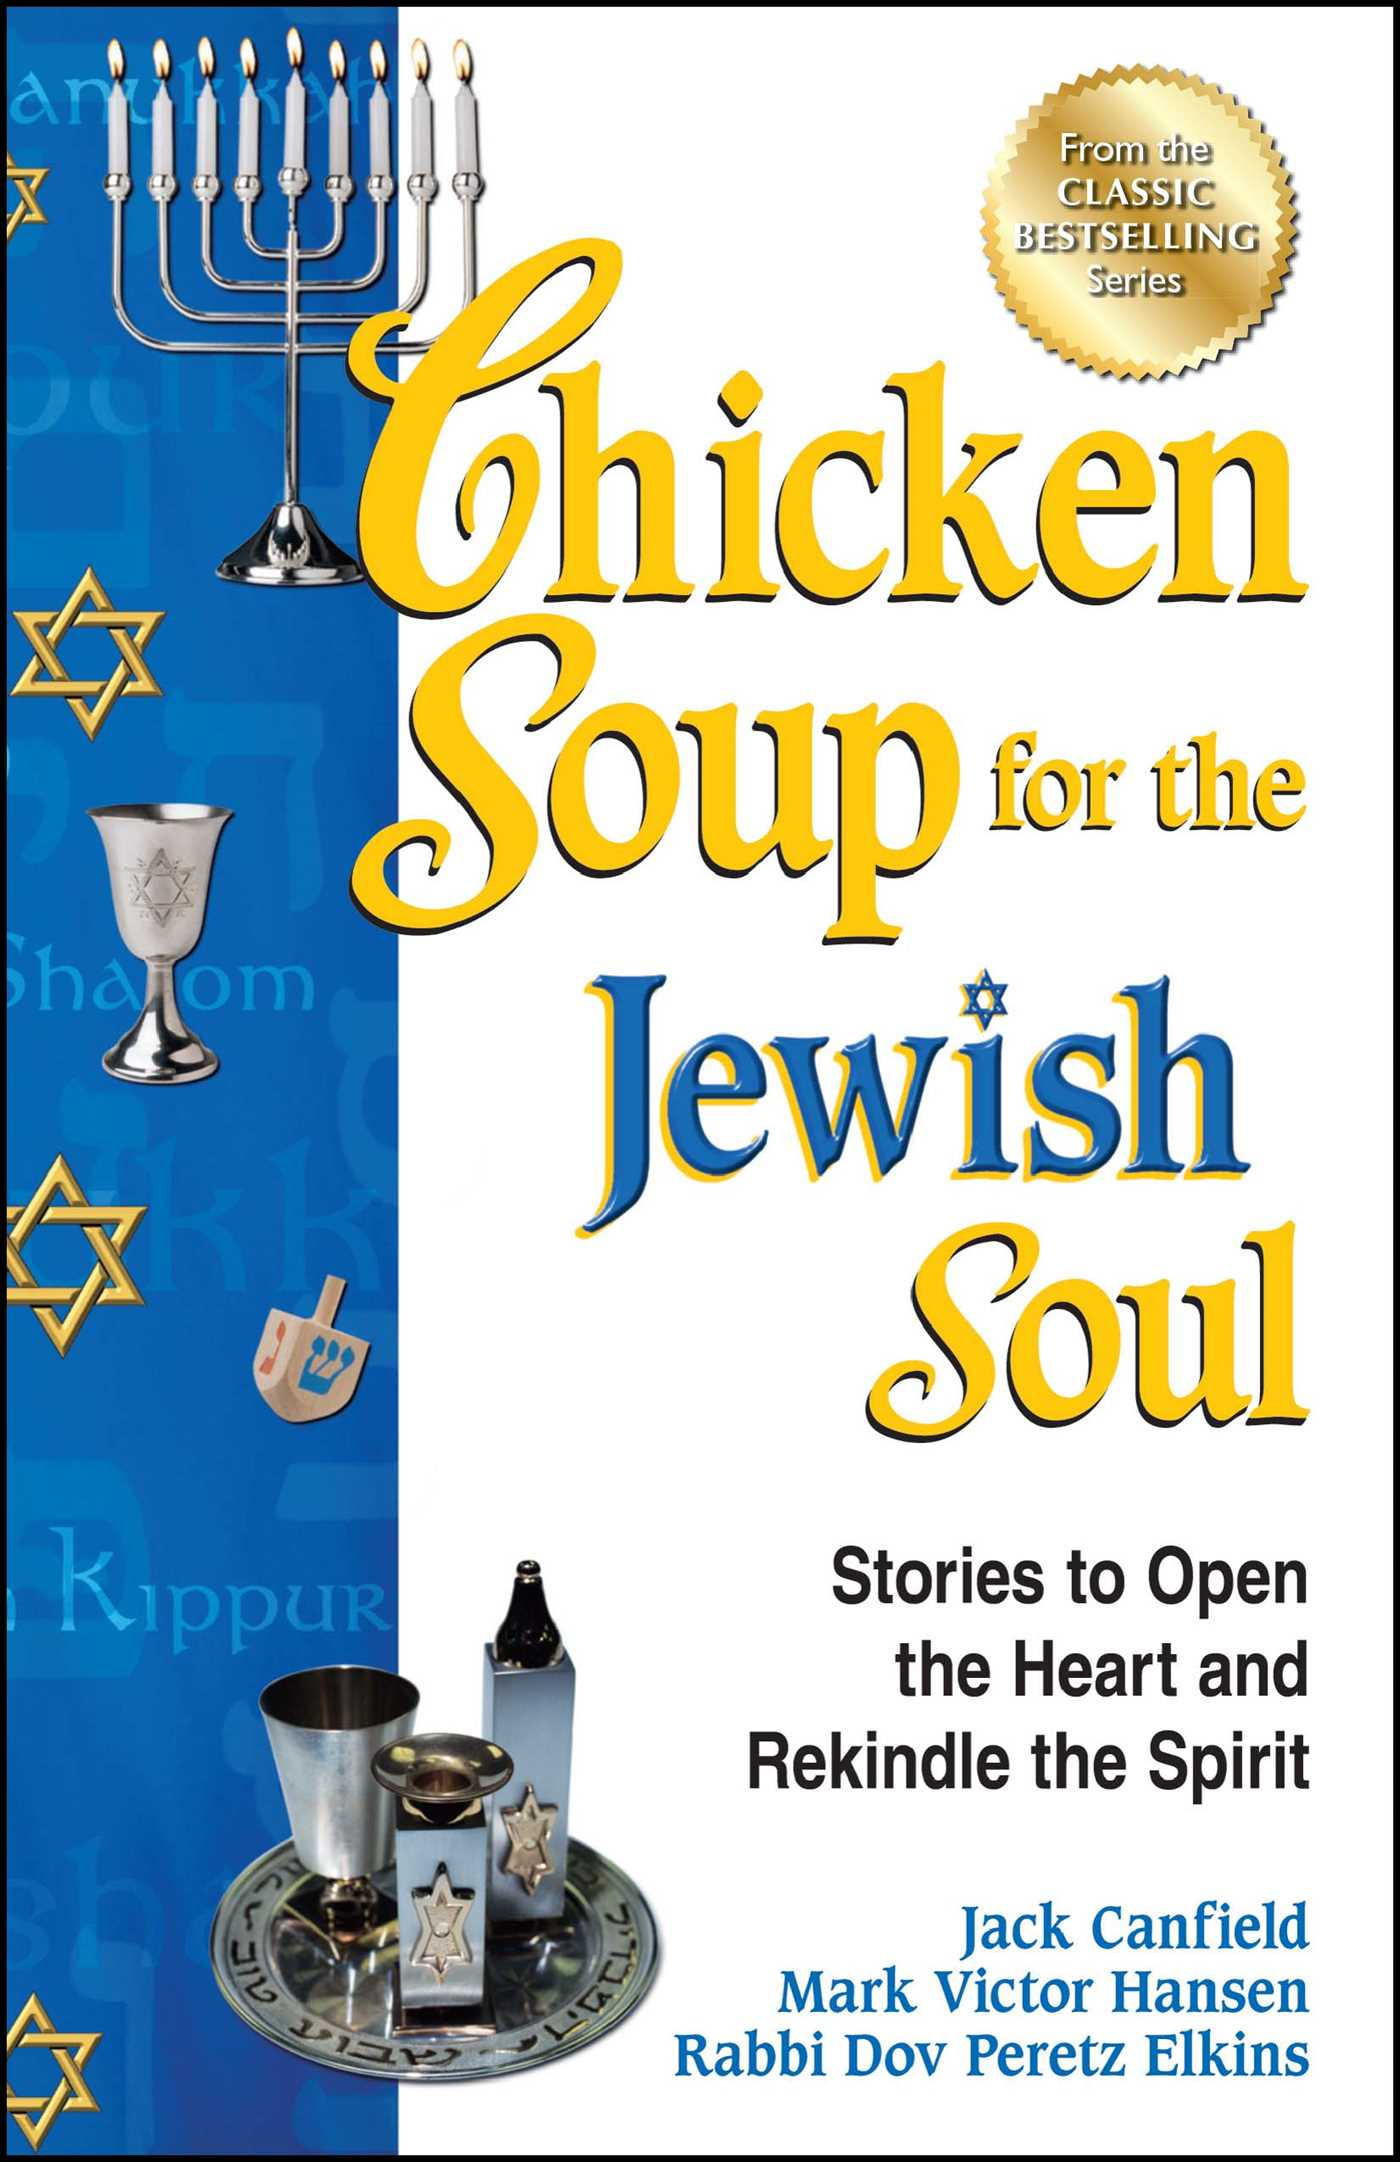 Chicken-soup-for-the-jewish-soul-9781623611002_hr